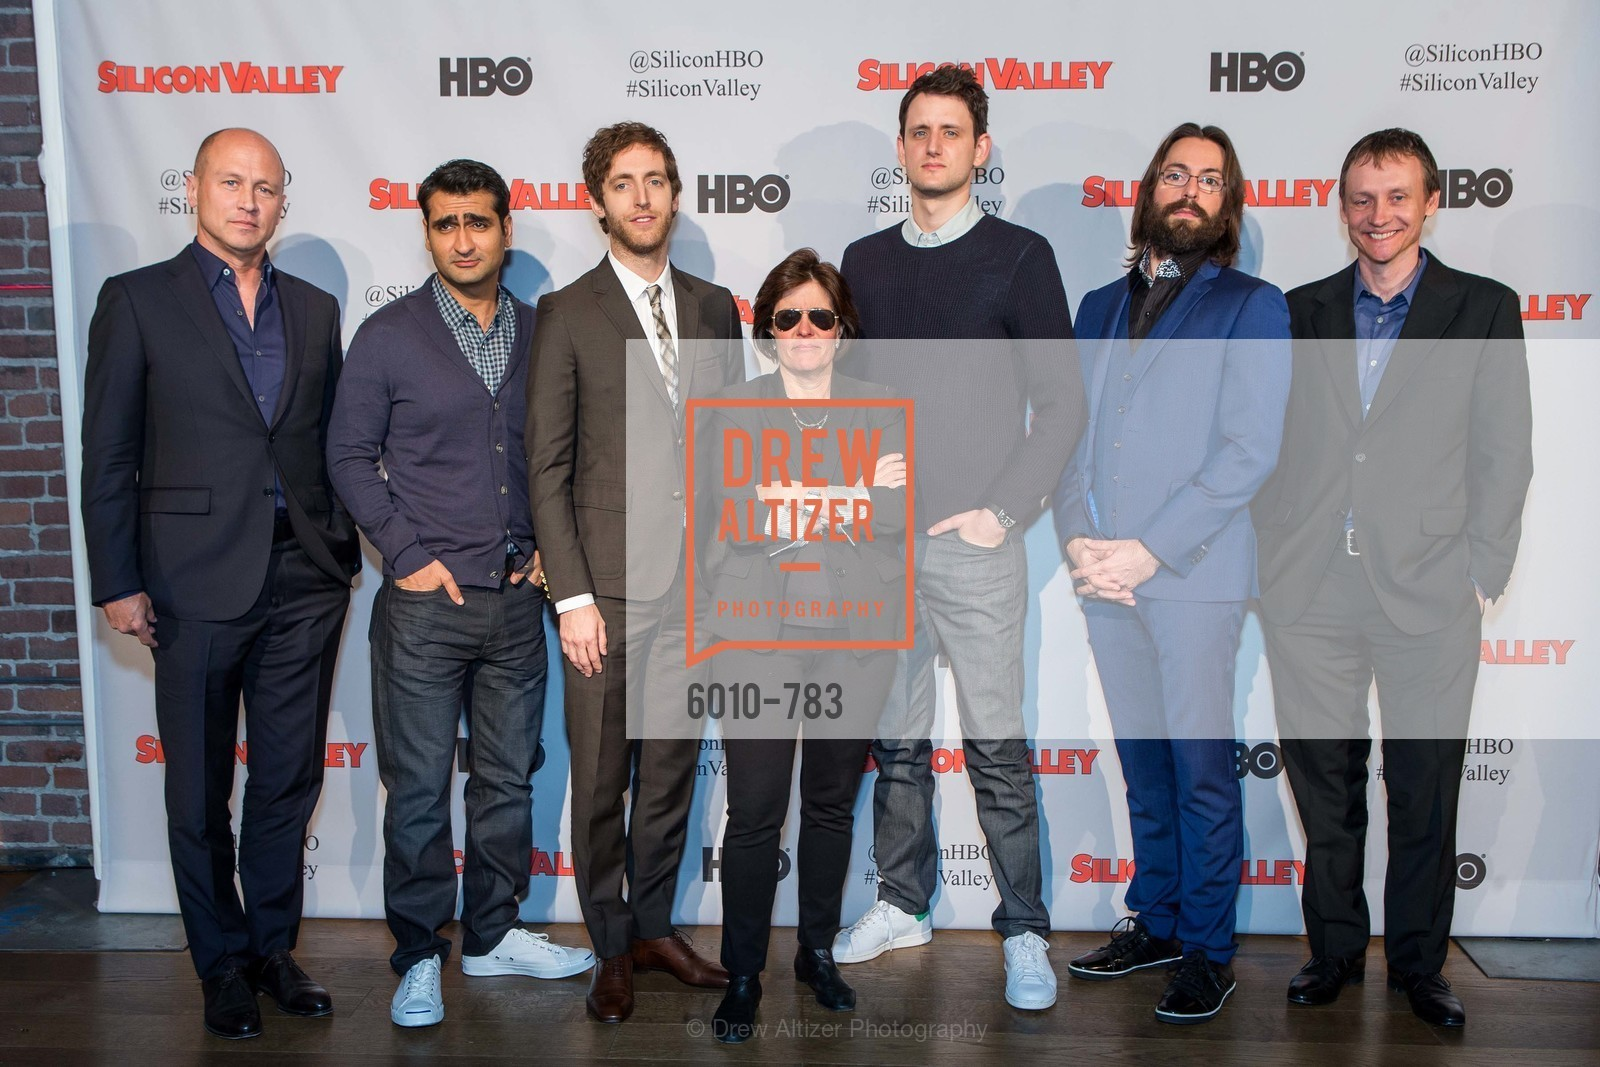 Mike Judge, Kumail Nanjiani, Thomas Middleditch, Kara Swisher, Zach Woods, Martin Starr, Alec Berg, HBO'S SILICON VALLEY San Francisco Screening, US, April 9th, 2015,Drew Altizer, Drew Altizer Photography, full-service agency, private events, San Francisco photographer, photographer california